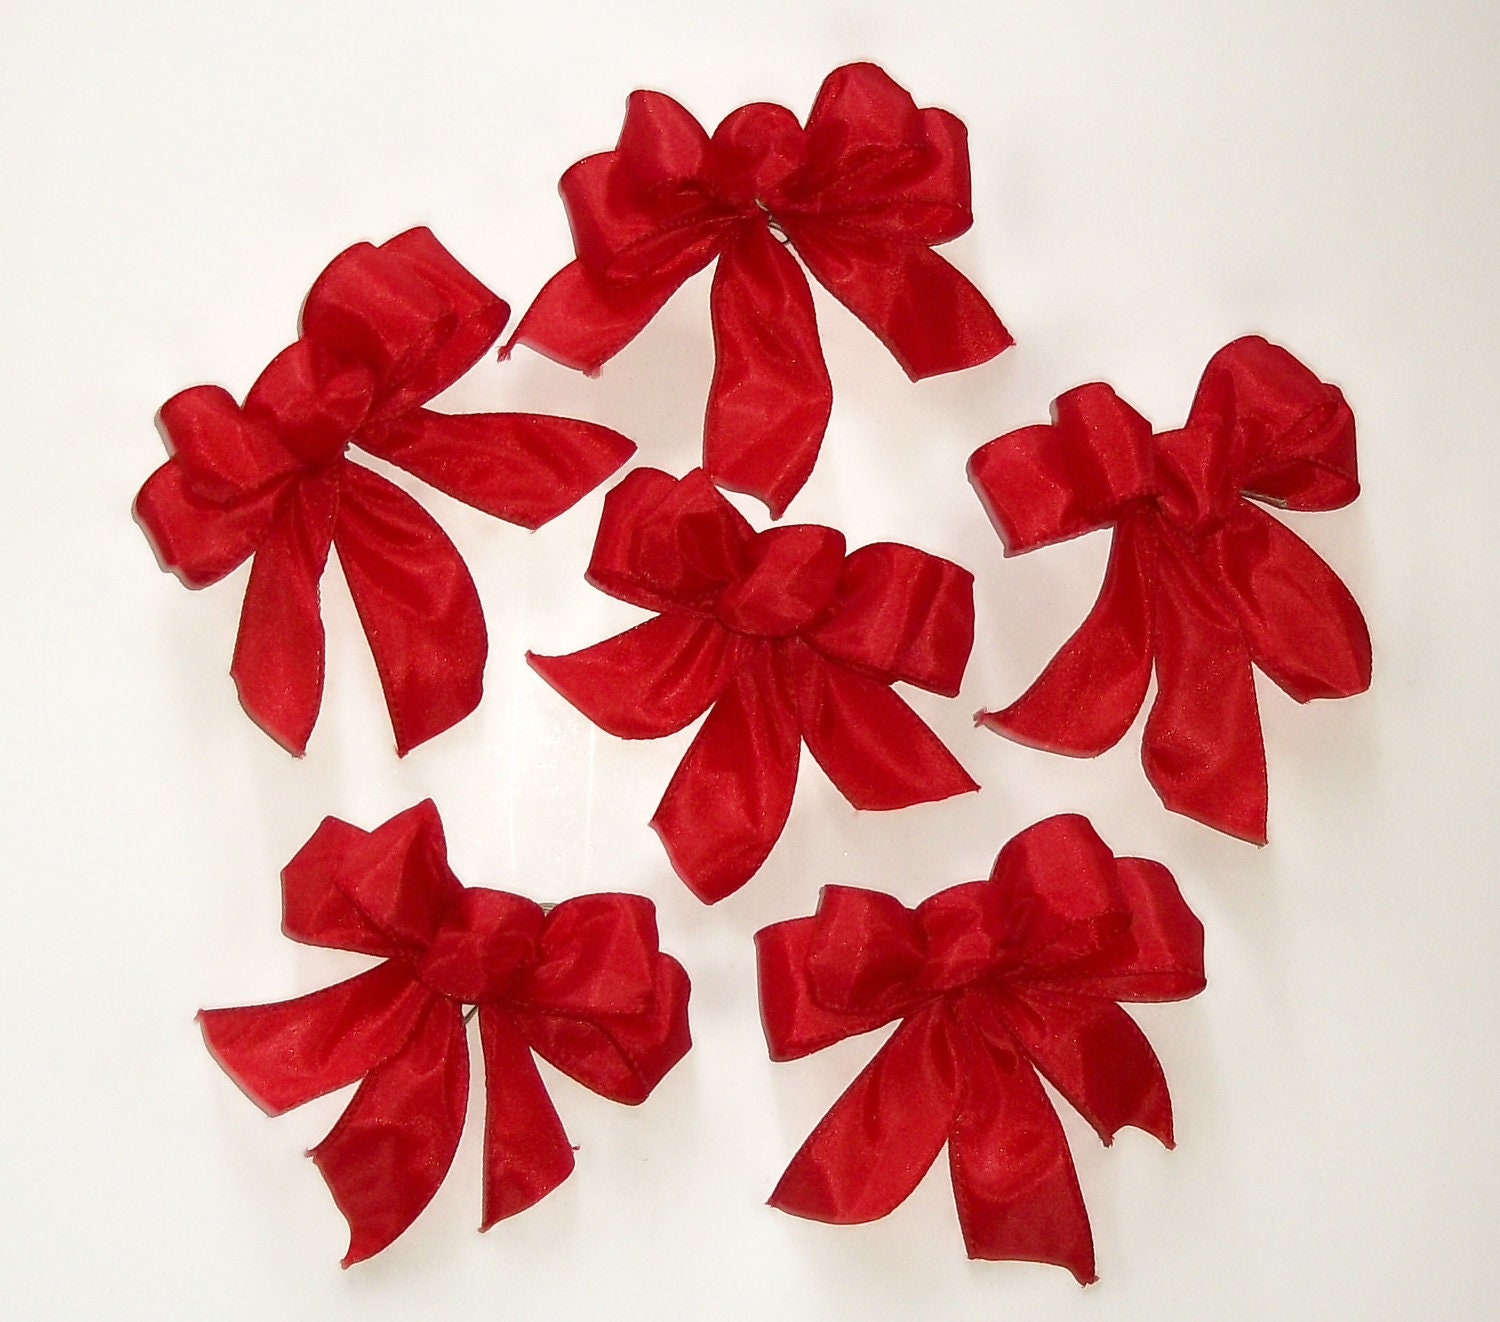 Christmas Tree Bows in Red Set of 6 Garland Bows Small